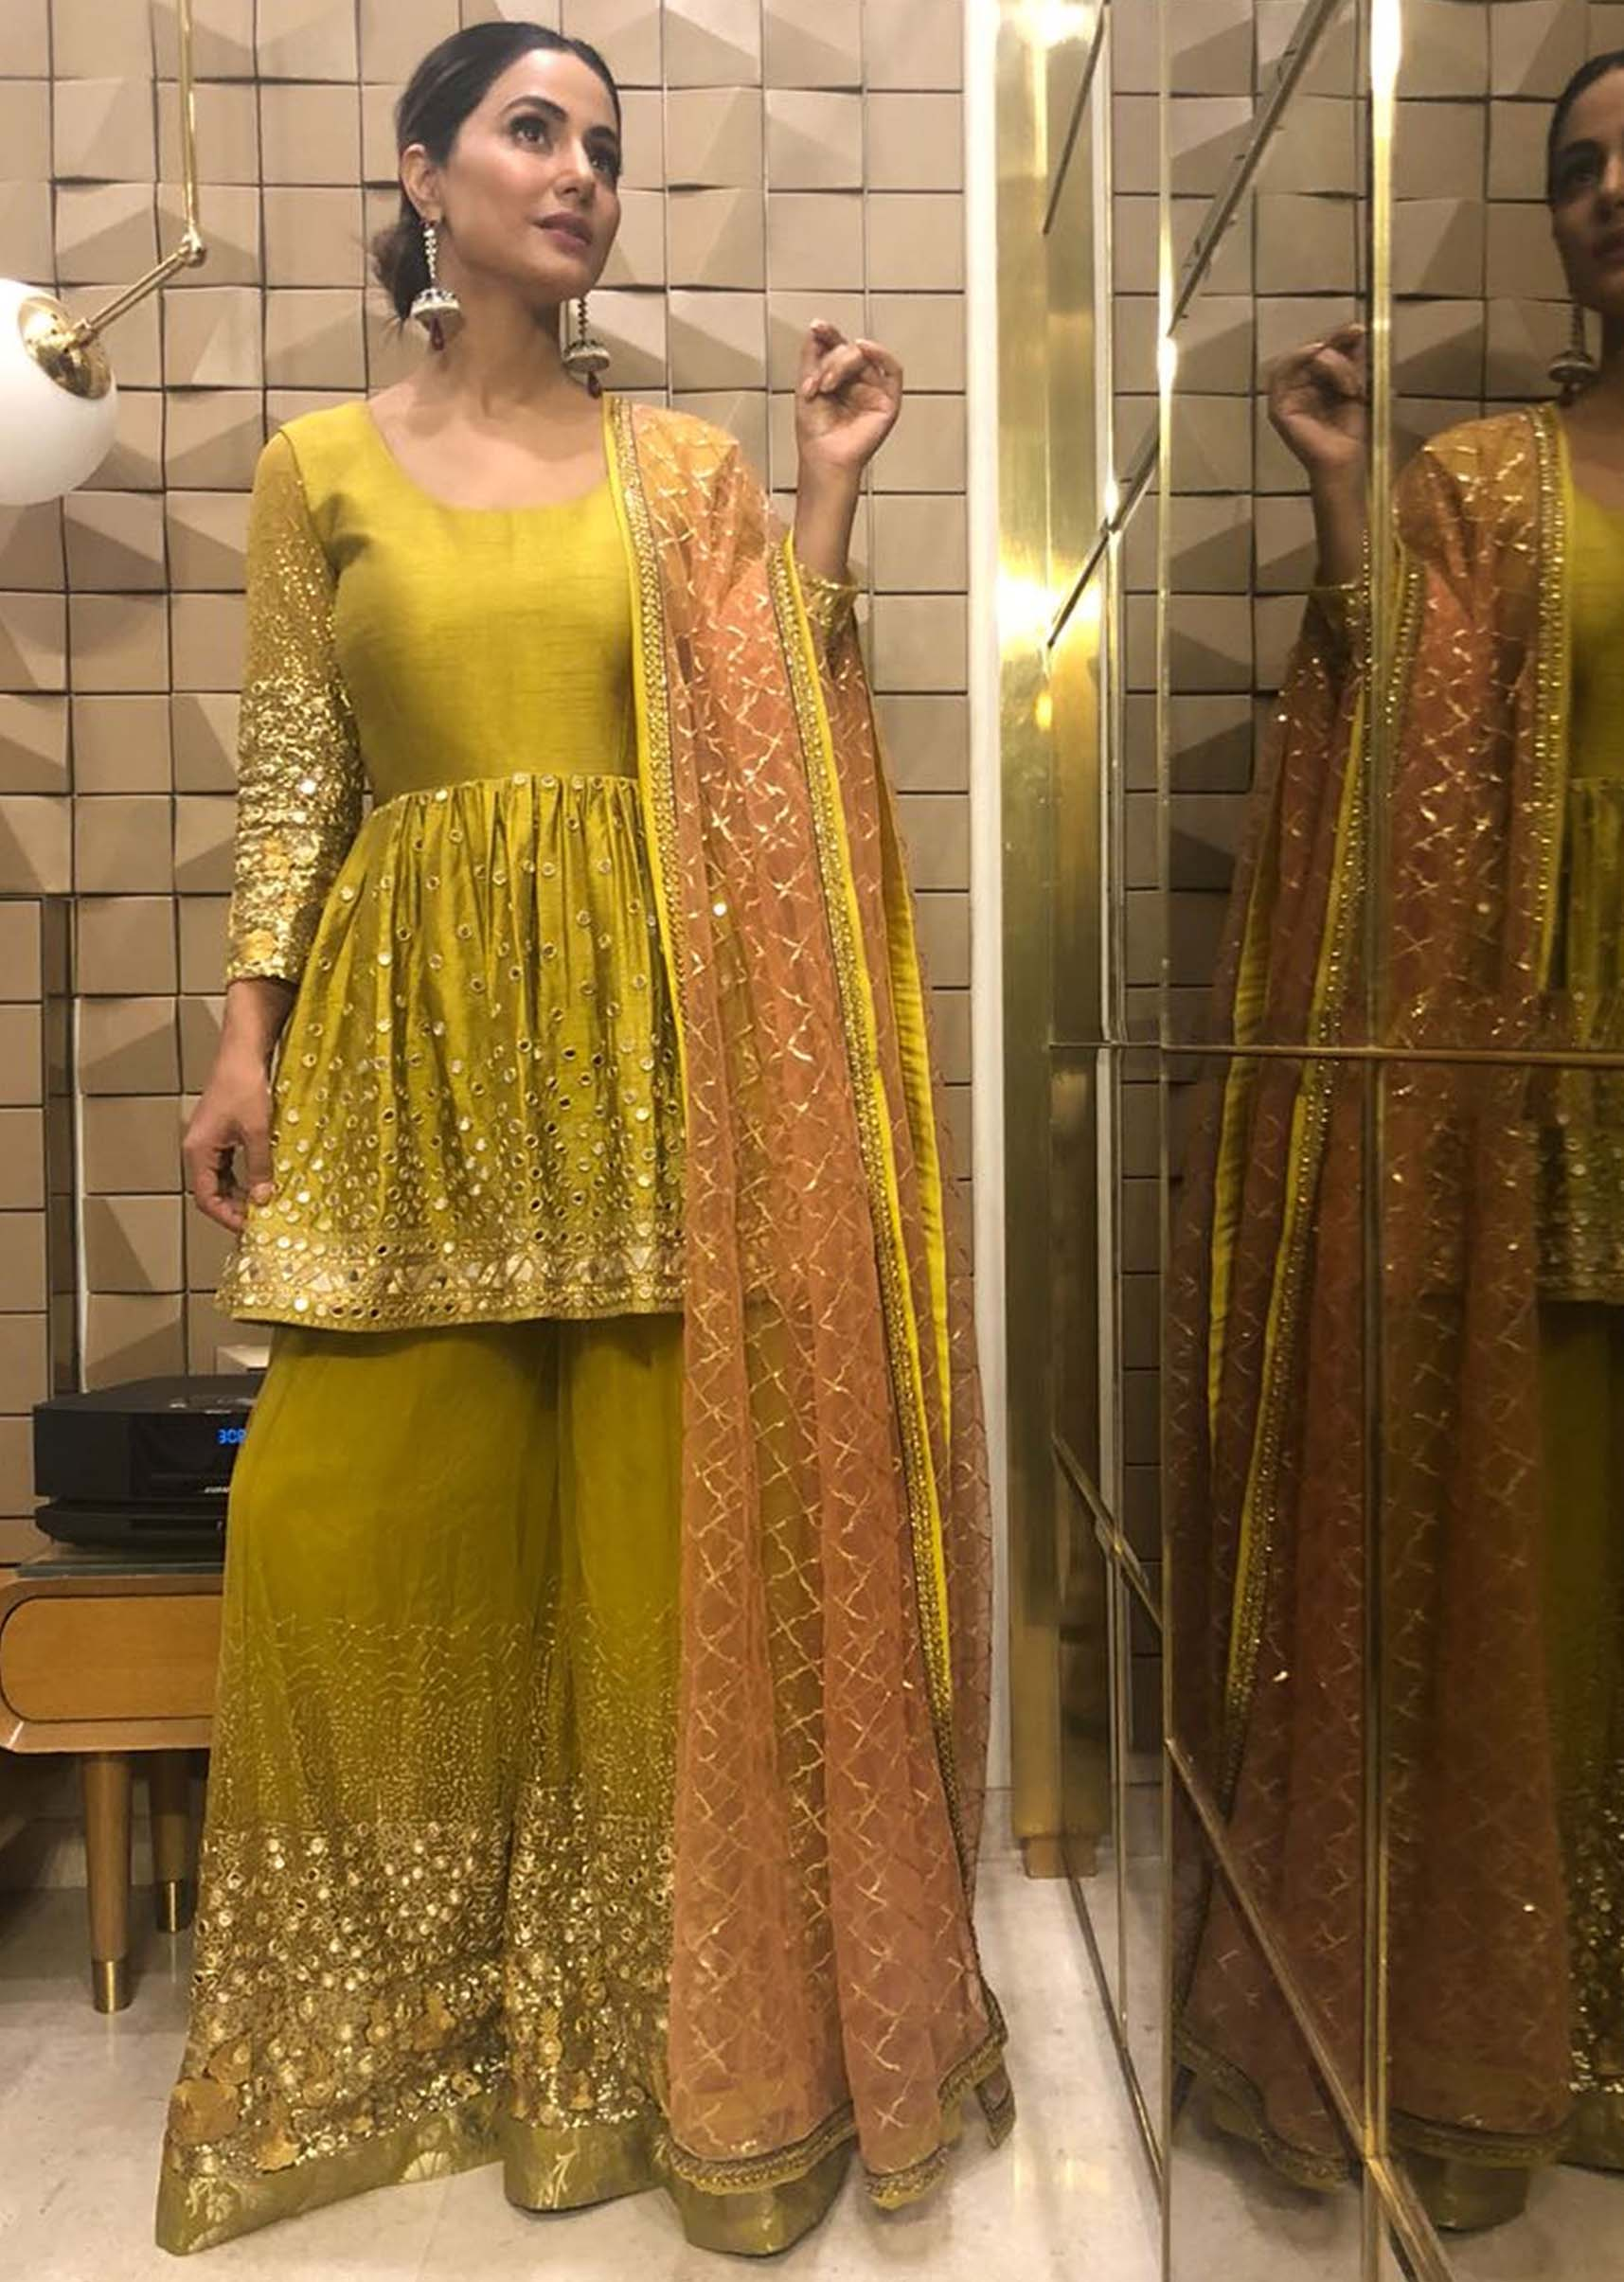 c12d4f2ca5 Hina Khan in Kalki mirror embroidered suit and sharara with contrasting  peach net dupattaMore Detail. In stock. Style No